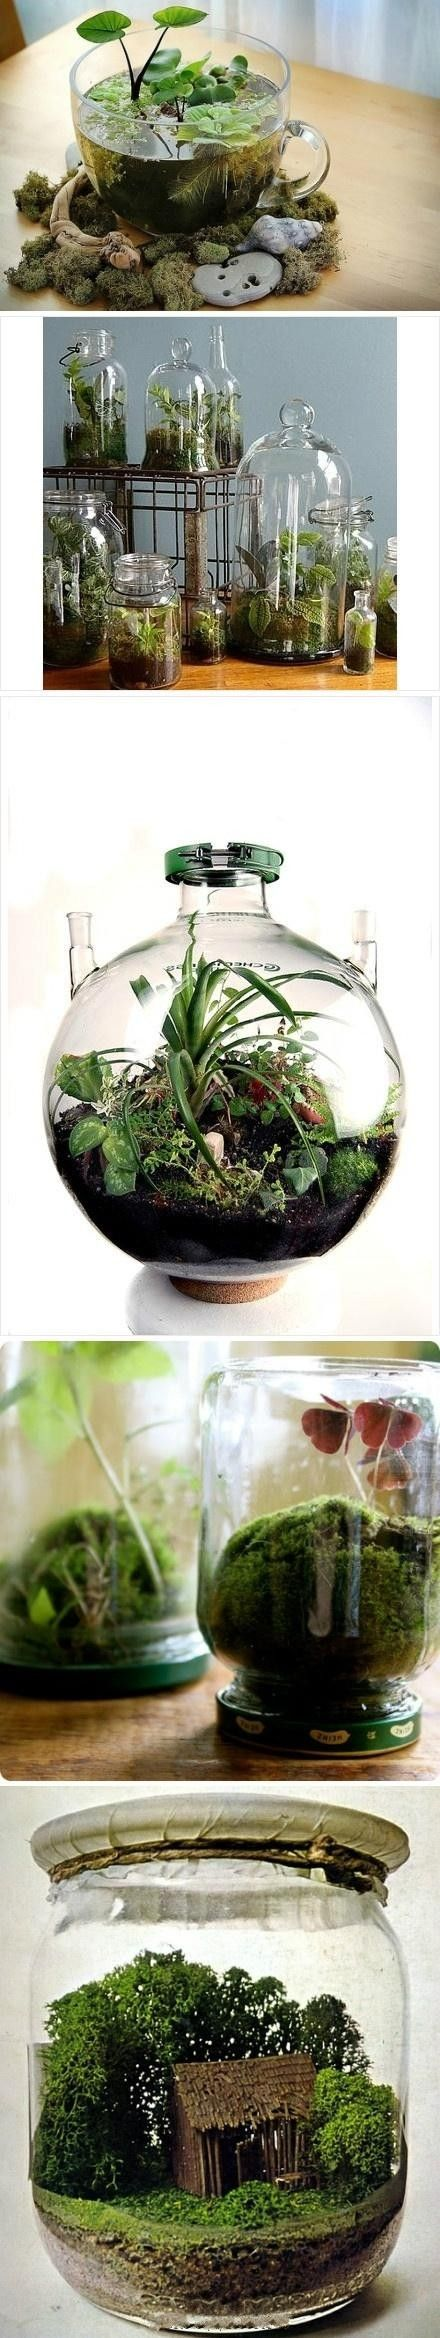 I want one of these for my office desk!!!!!!